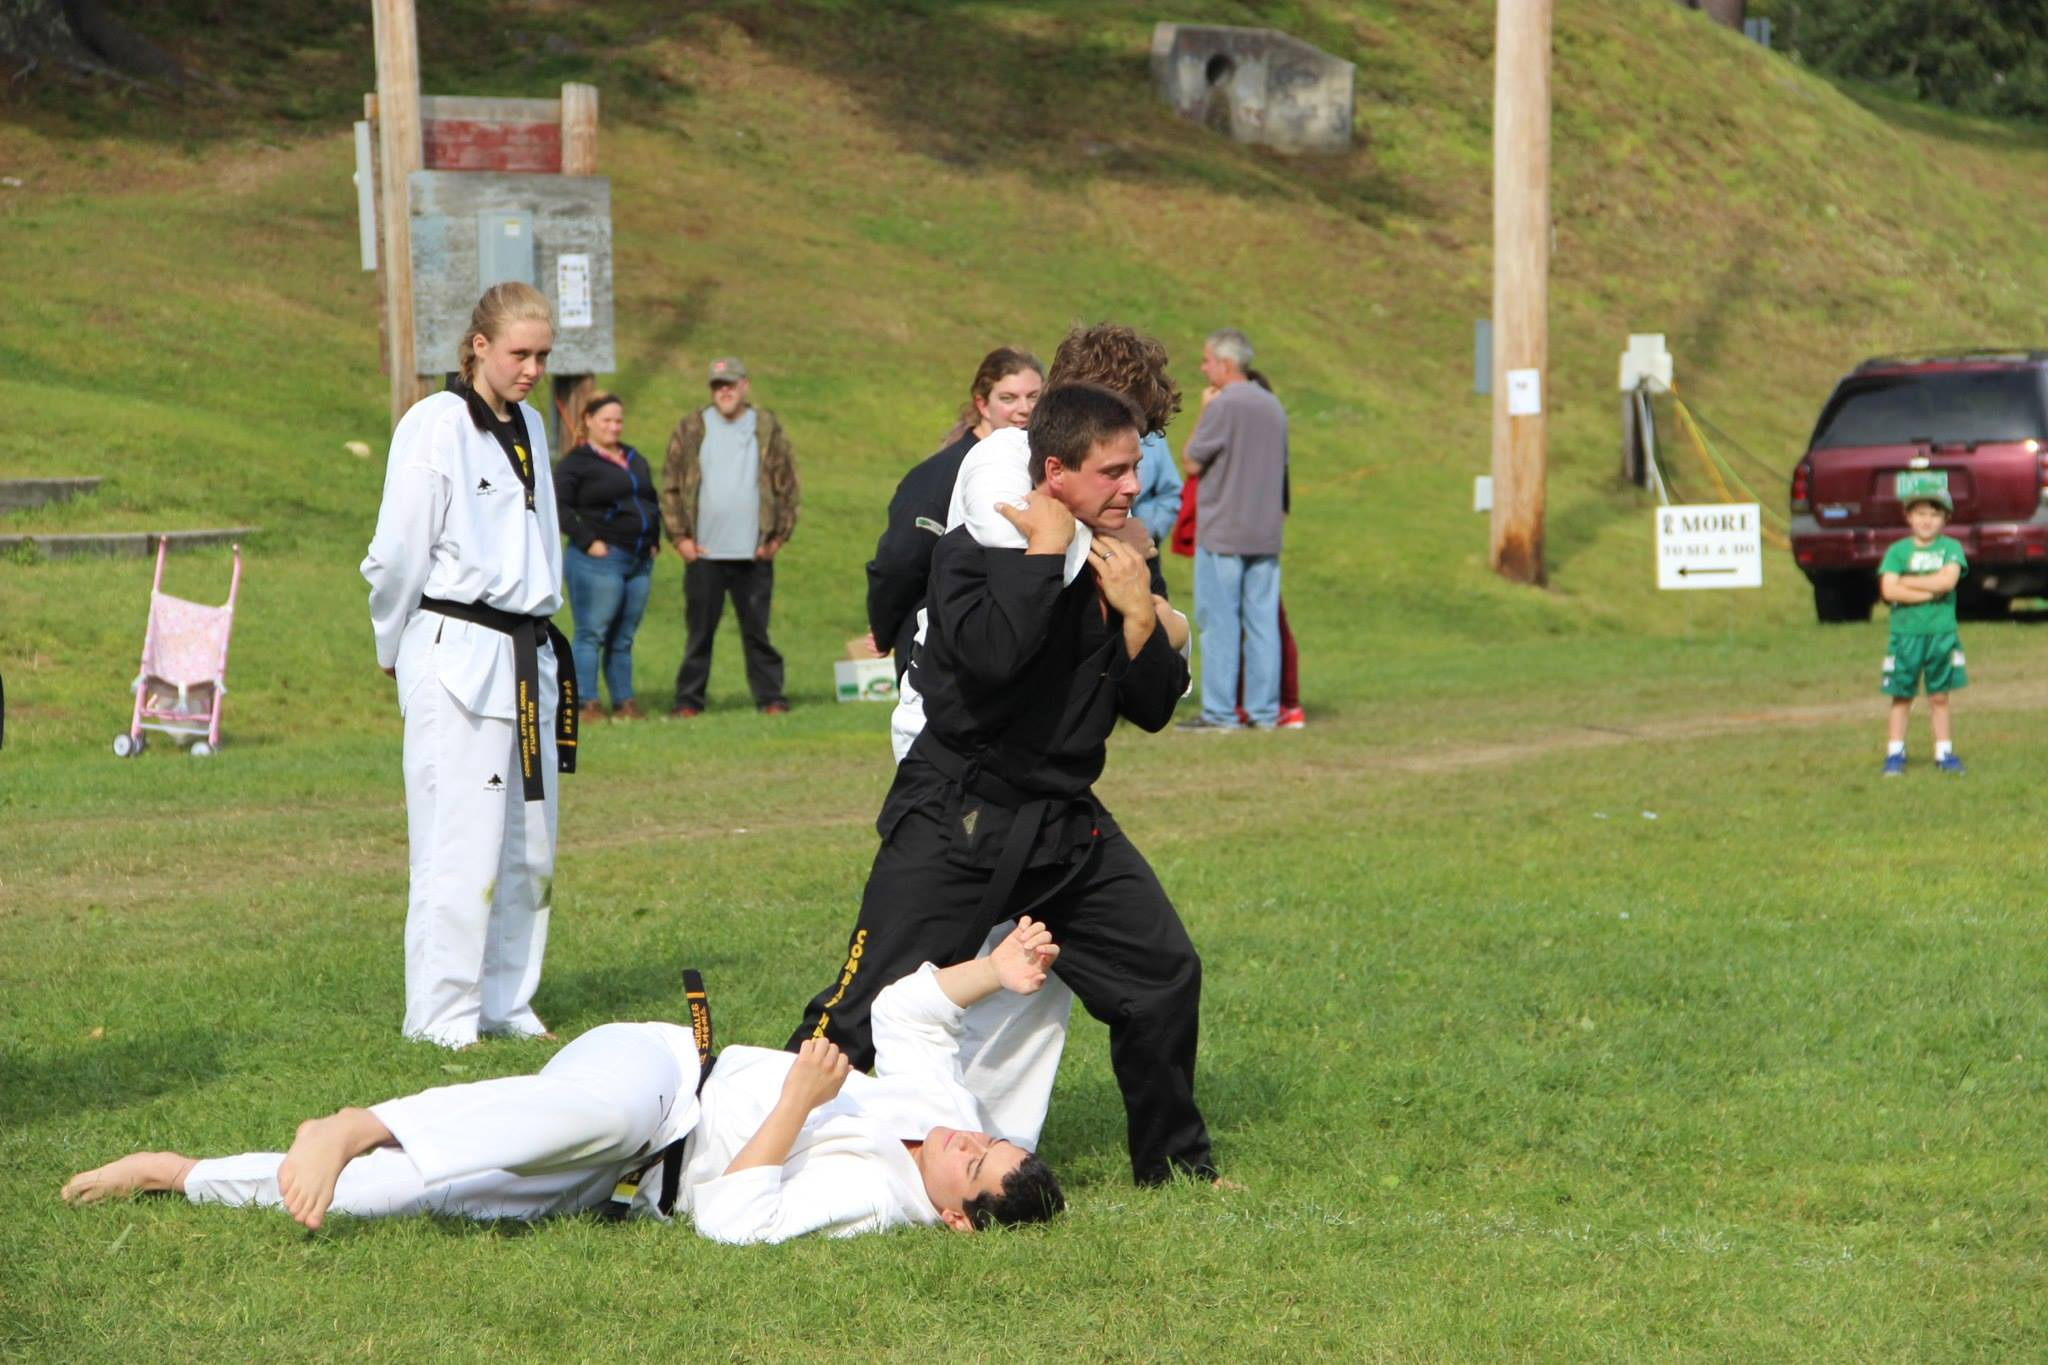 Carson, alex, and DC hapkido demo.jpg